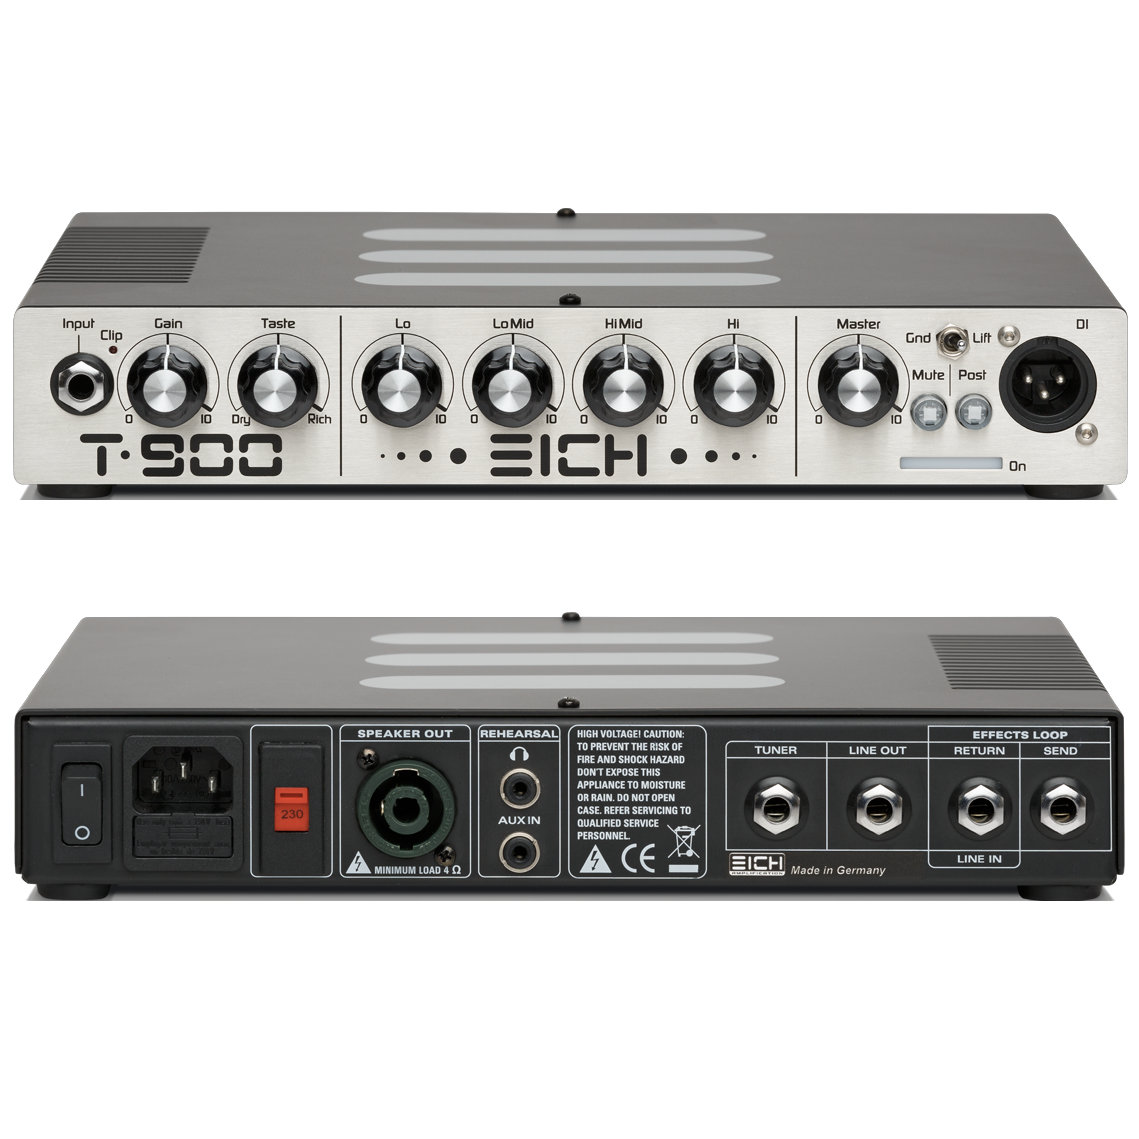 eich-amplification-t-900-bass-amp-1